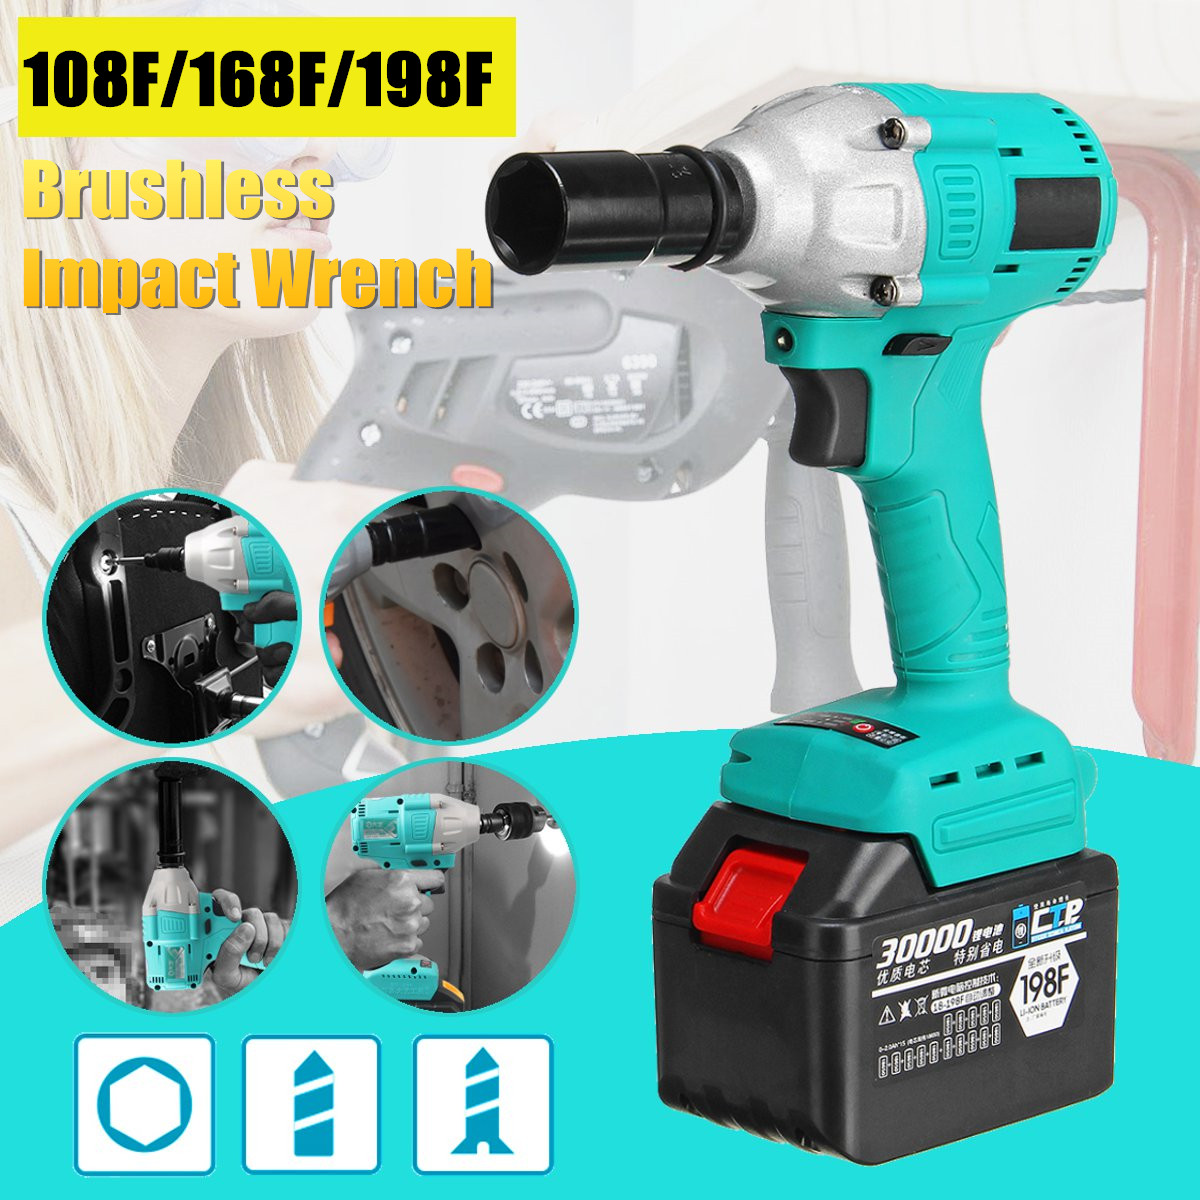 30000mAh Brushless Electric Wrench Li-ion Impact Wrench Wood Working Driver Wrench Tools